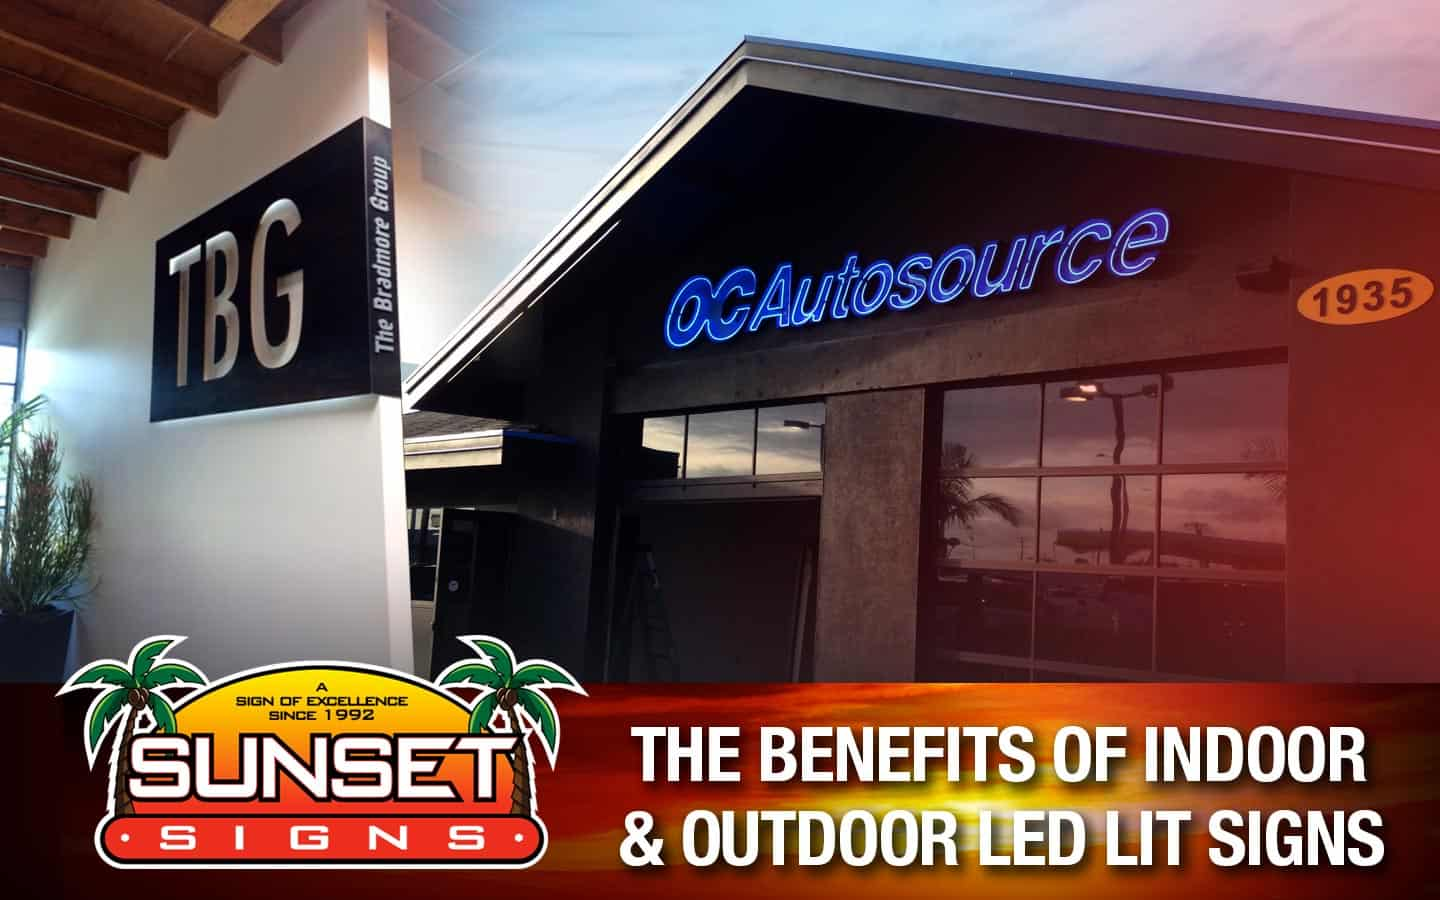 The Benefits Of Indoor & Outdoor LED Lit Signs